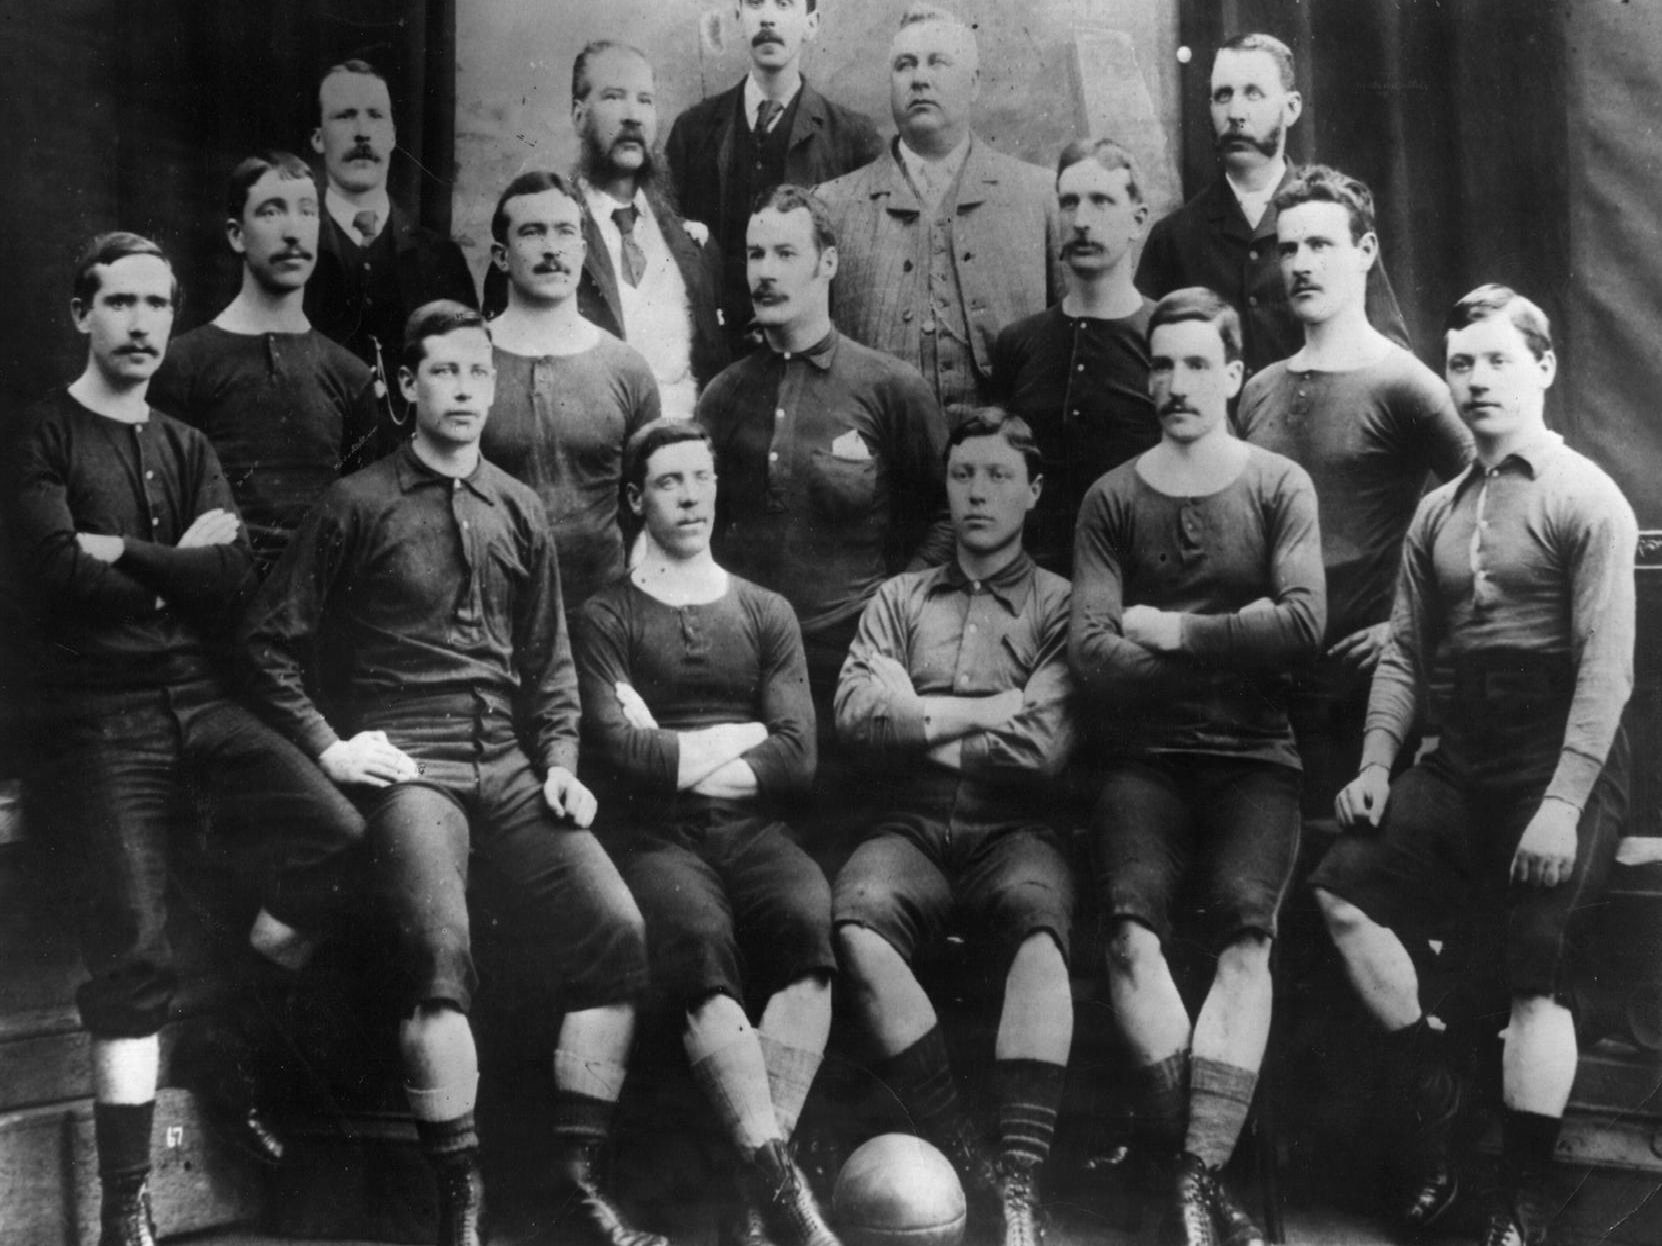 Renton FC were one of the founding fathers of the Scottish football league